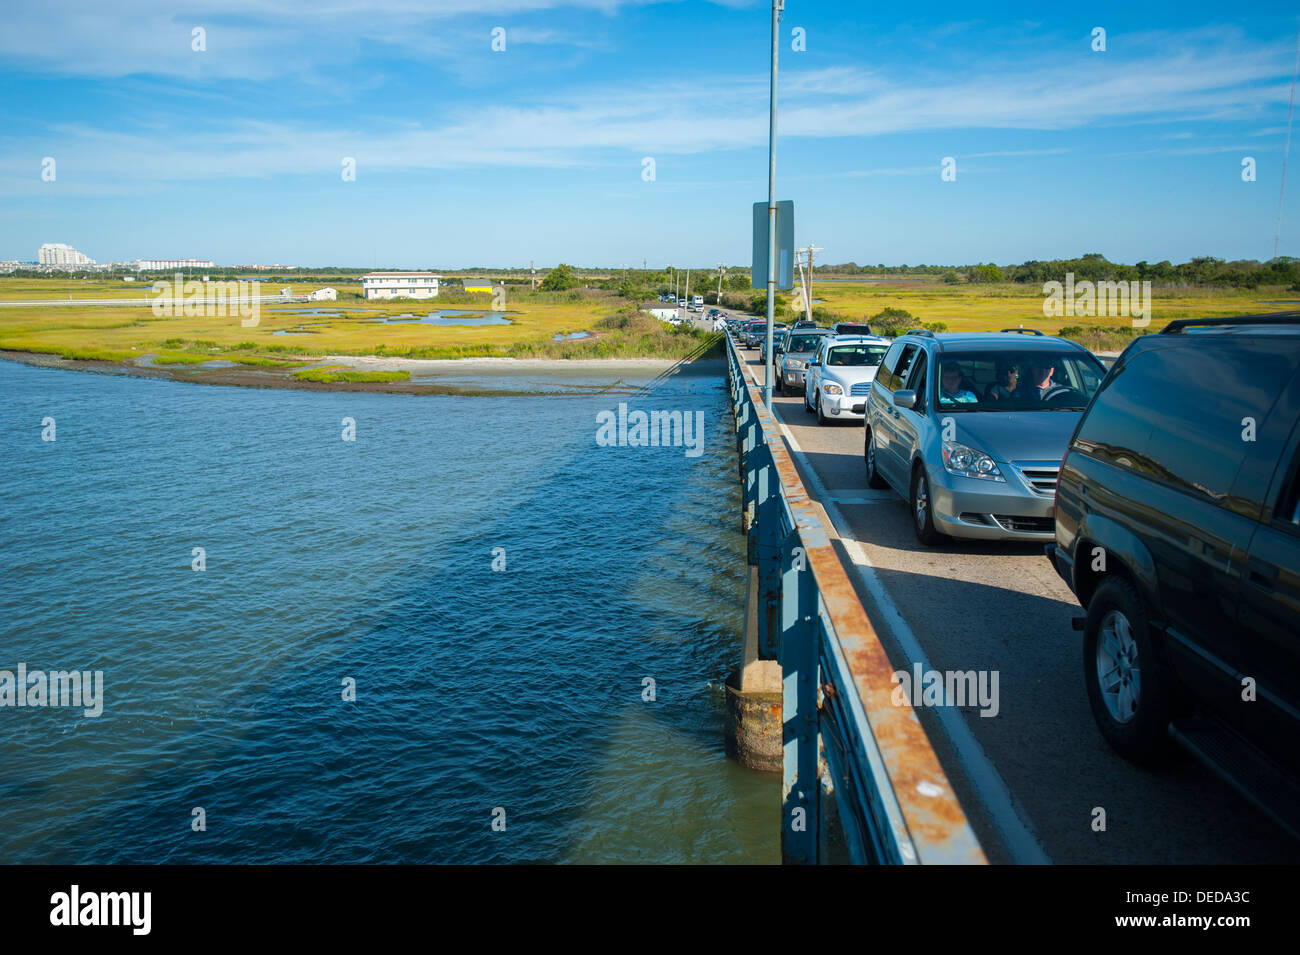 USA New Jersey NJ N.J. traffic lined up on the Middle Thorofare Bridge between the Wildwoods and Cape May - Stock Image